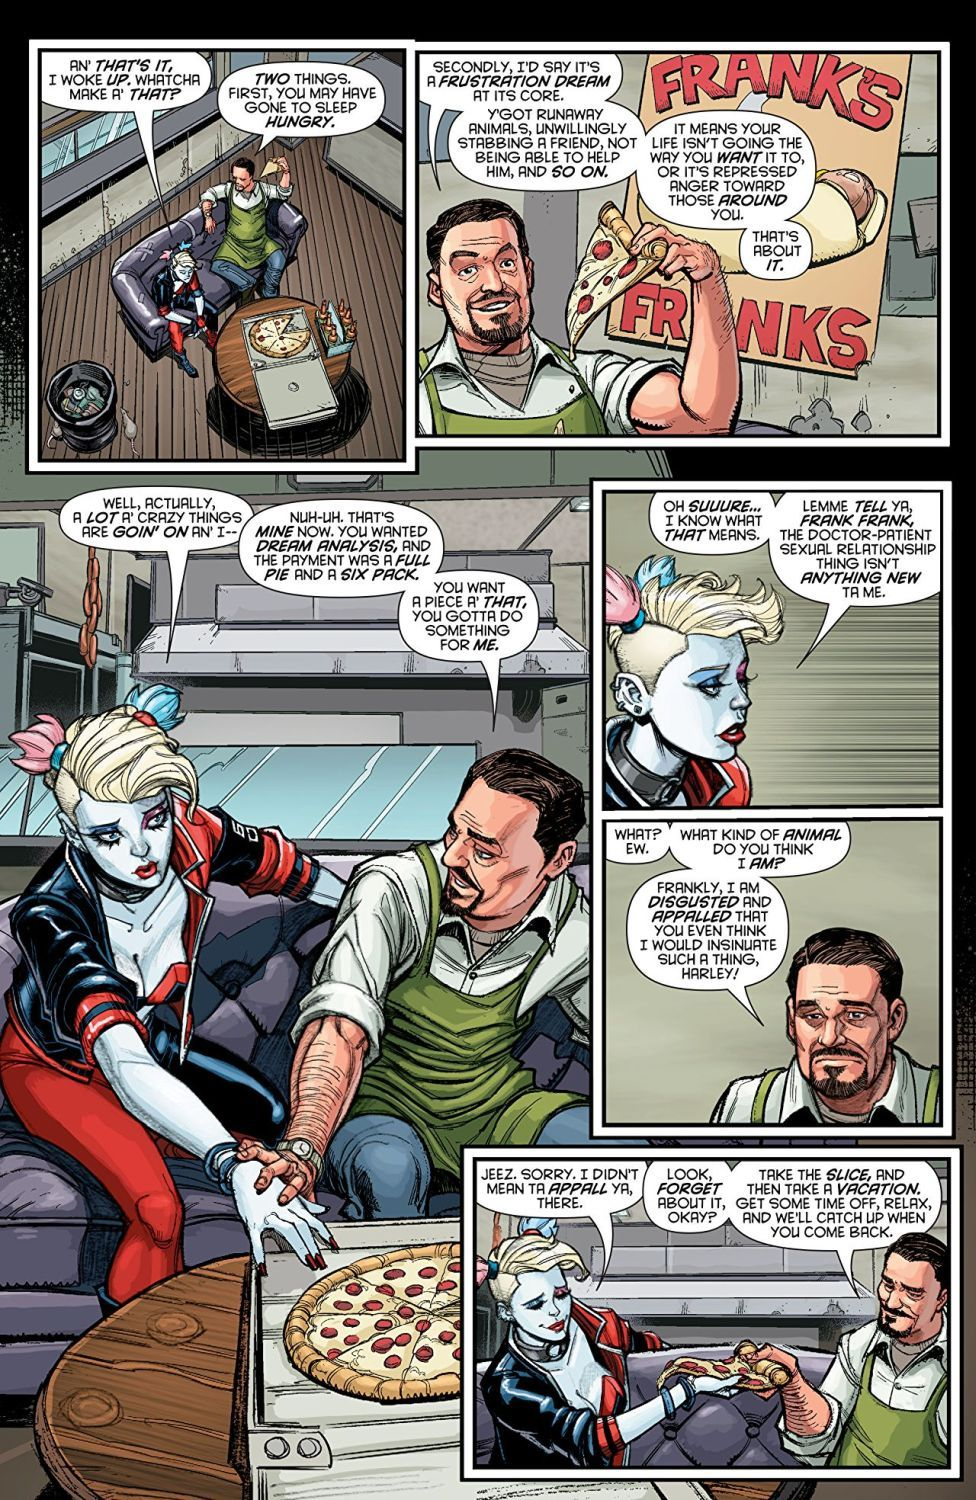 Harley Quinn Vol. 2 Joker Loves Harley (Rebirth) - 3